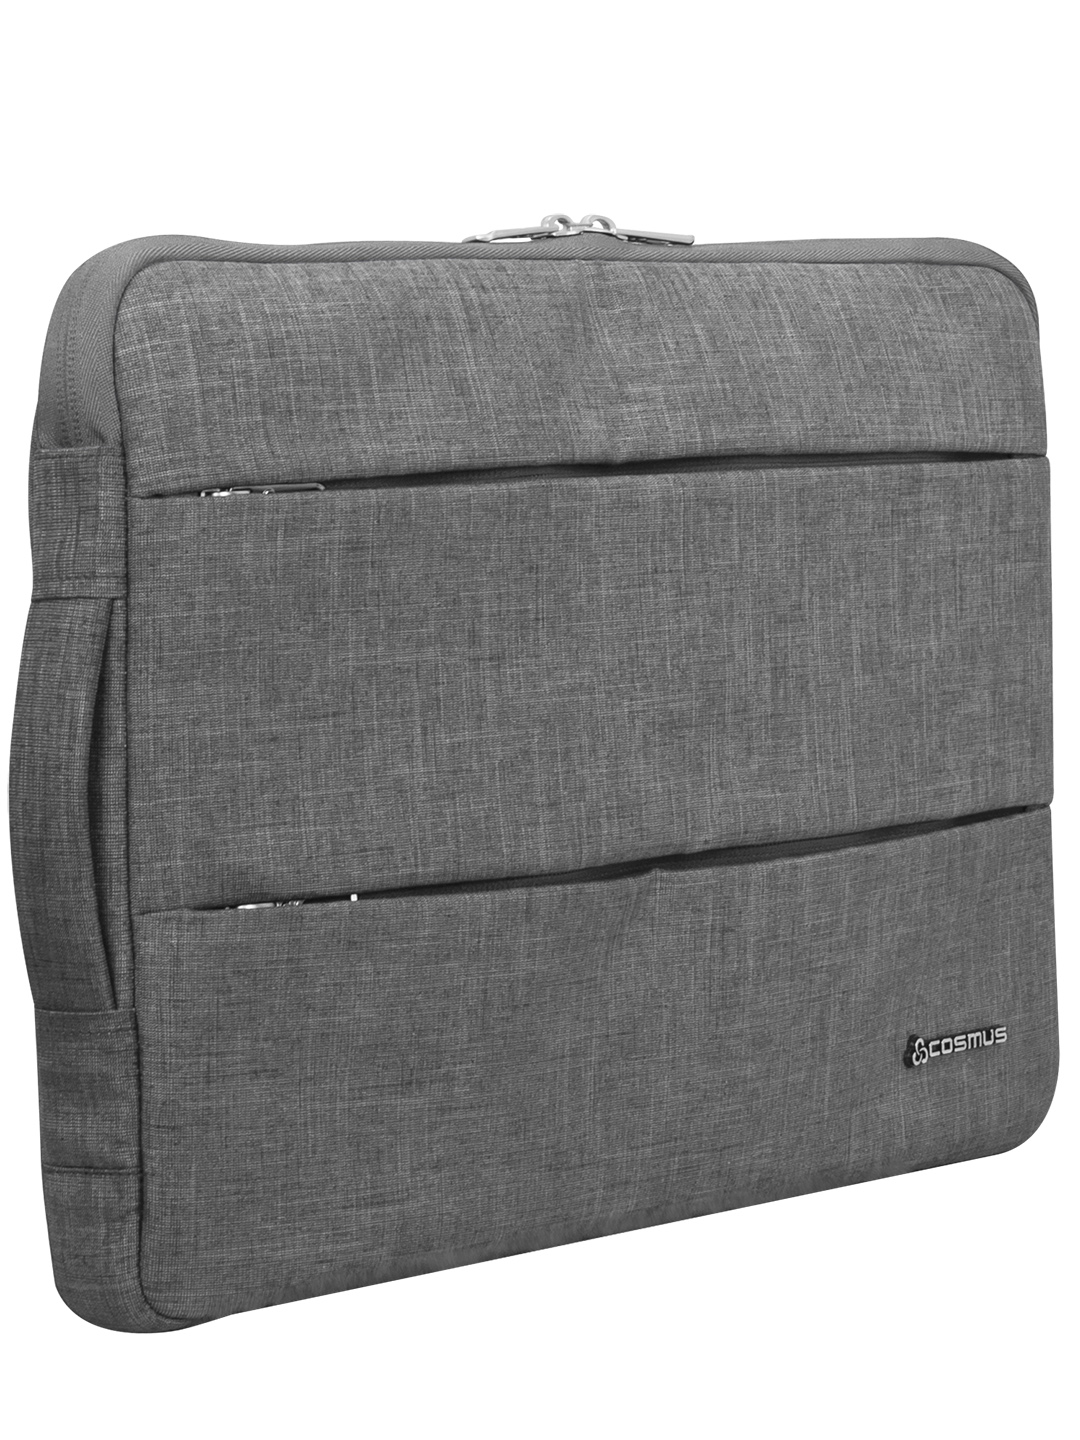 Cosmus Impact Light Grey Laptop Sleeve up to 15.6 inches